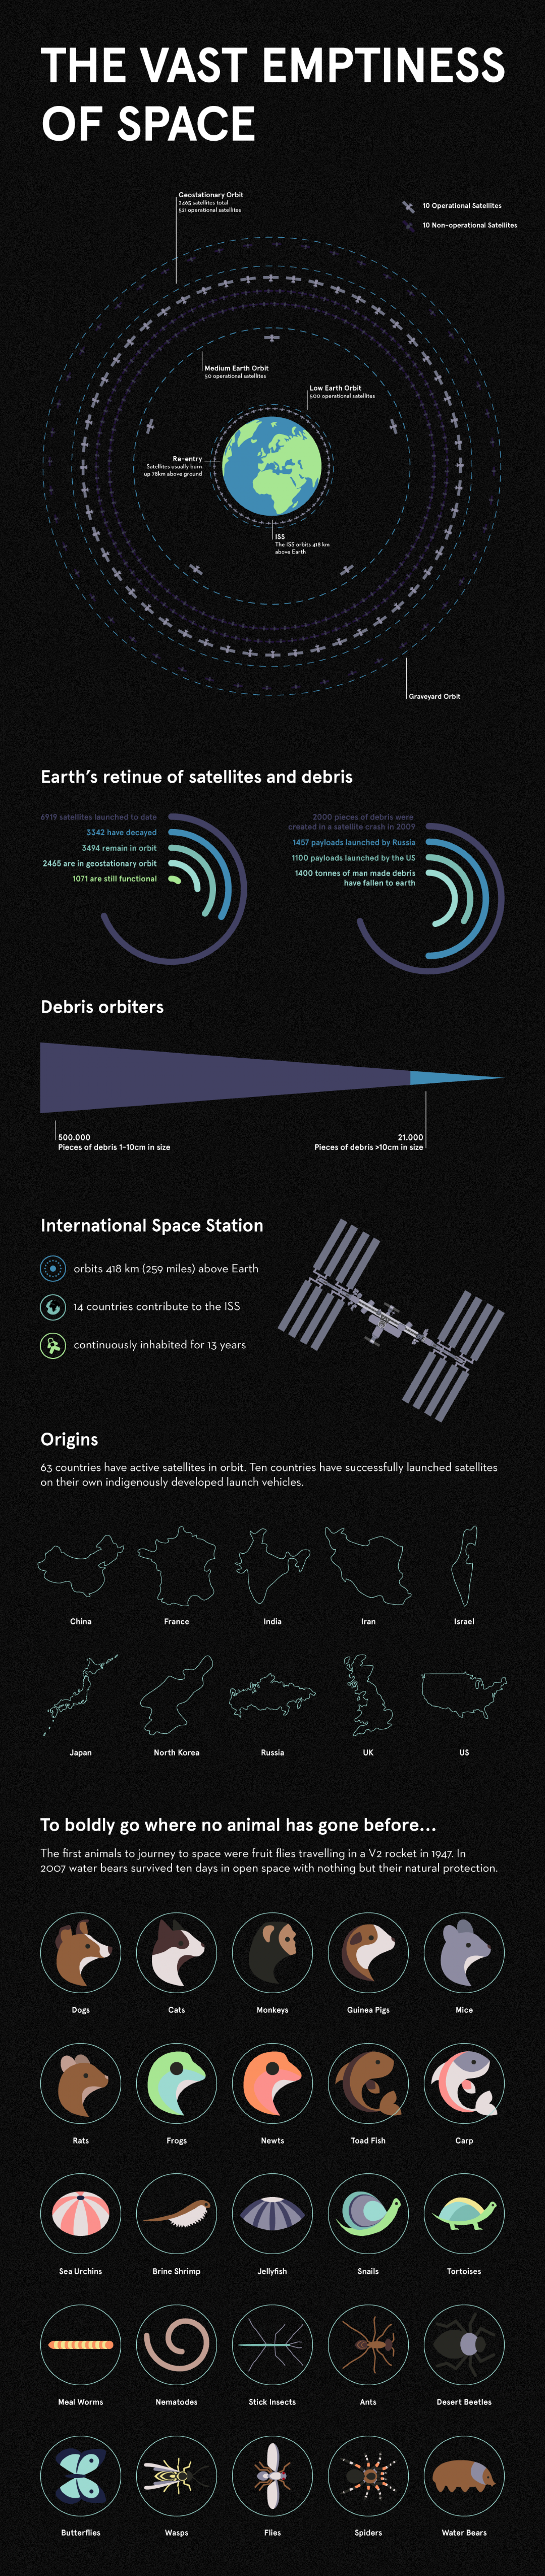 Vast Emptiness of Space Infographic